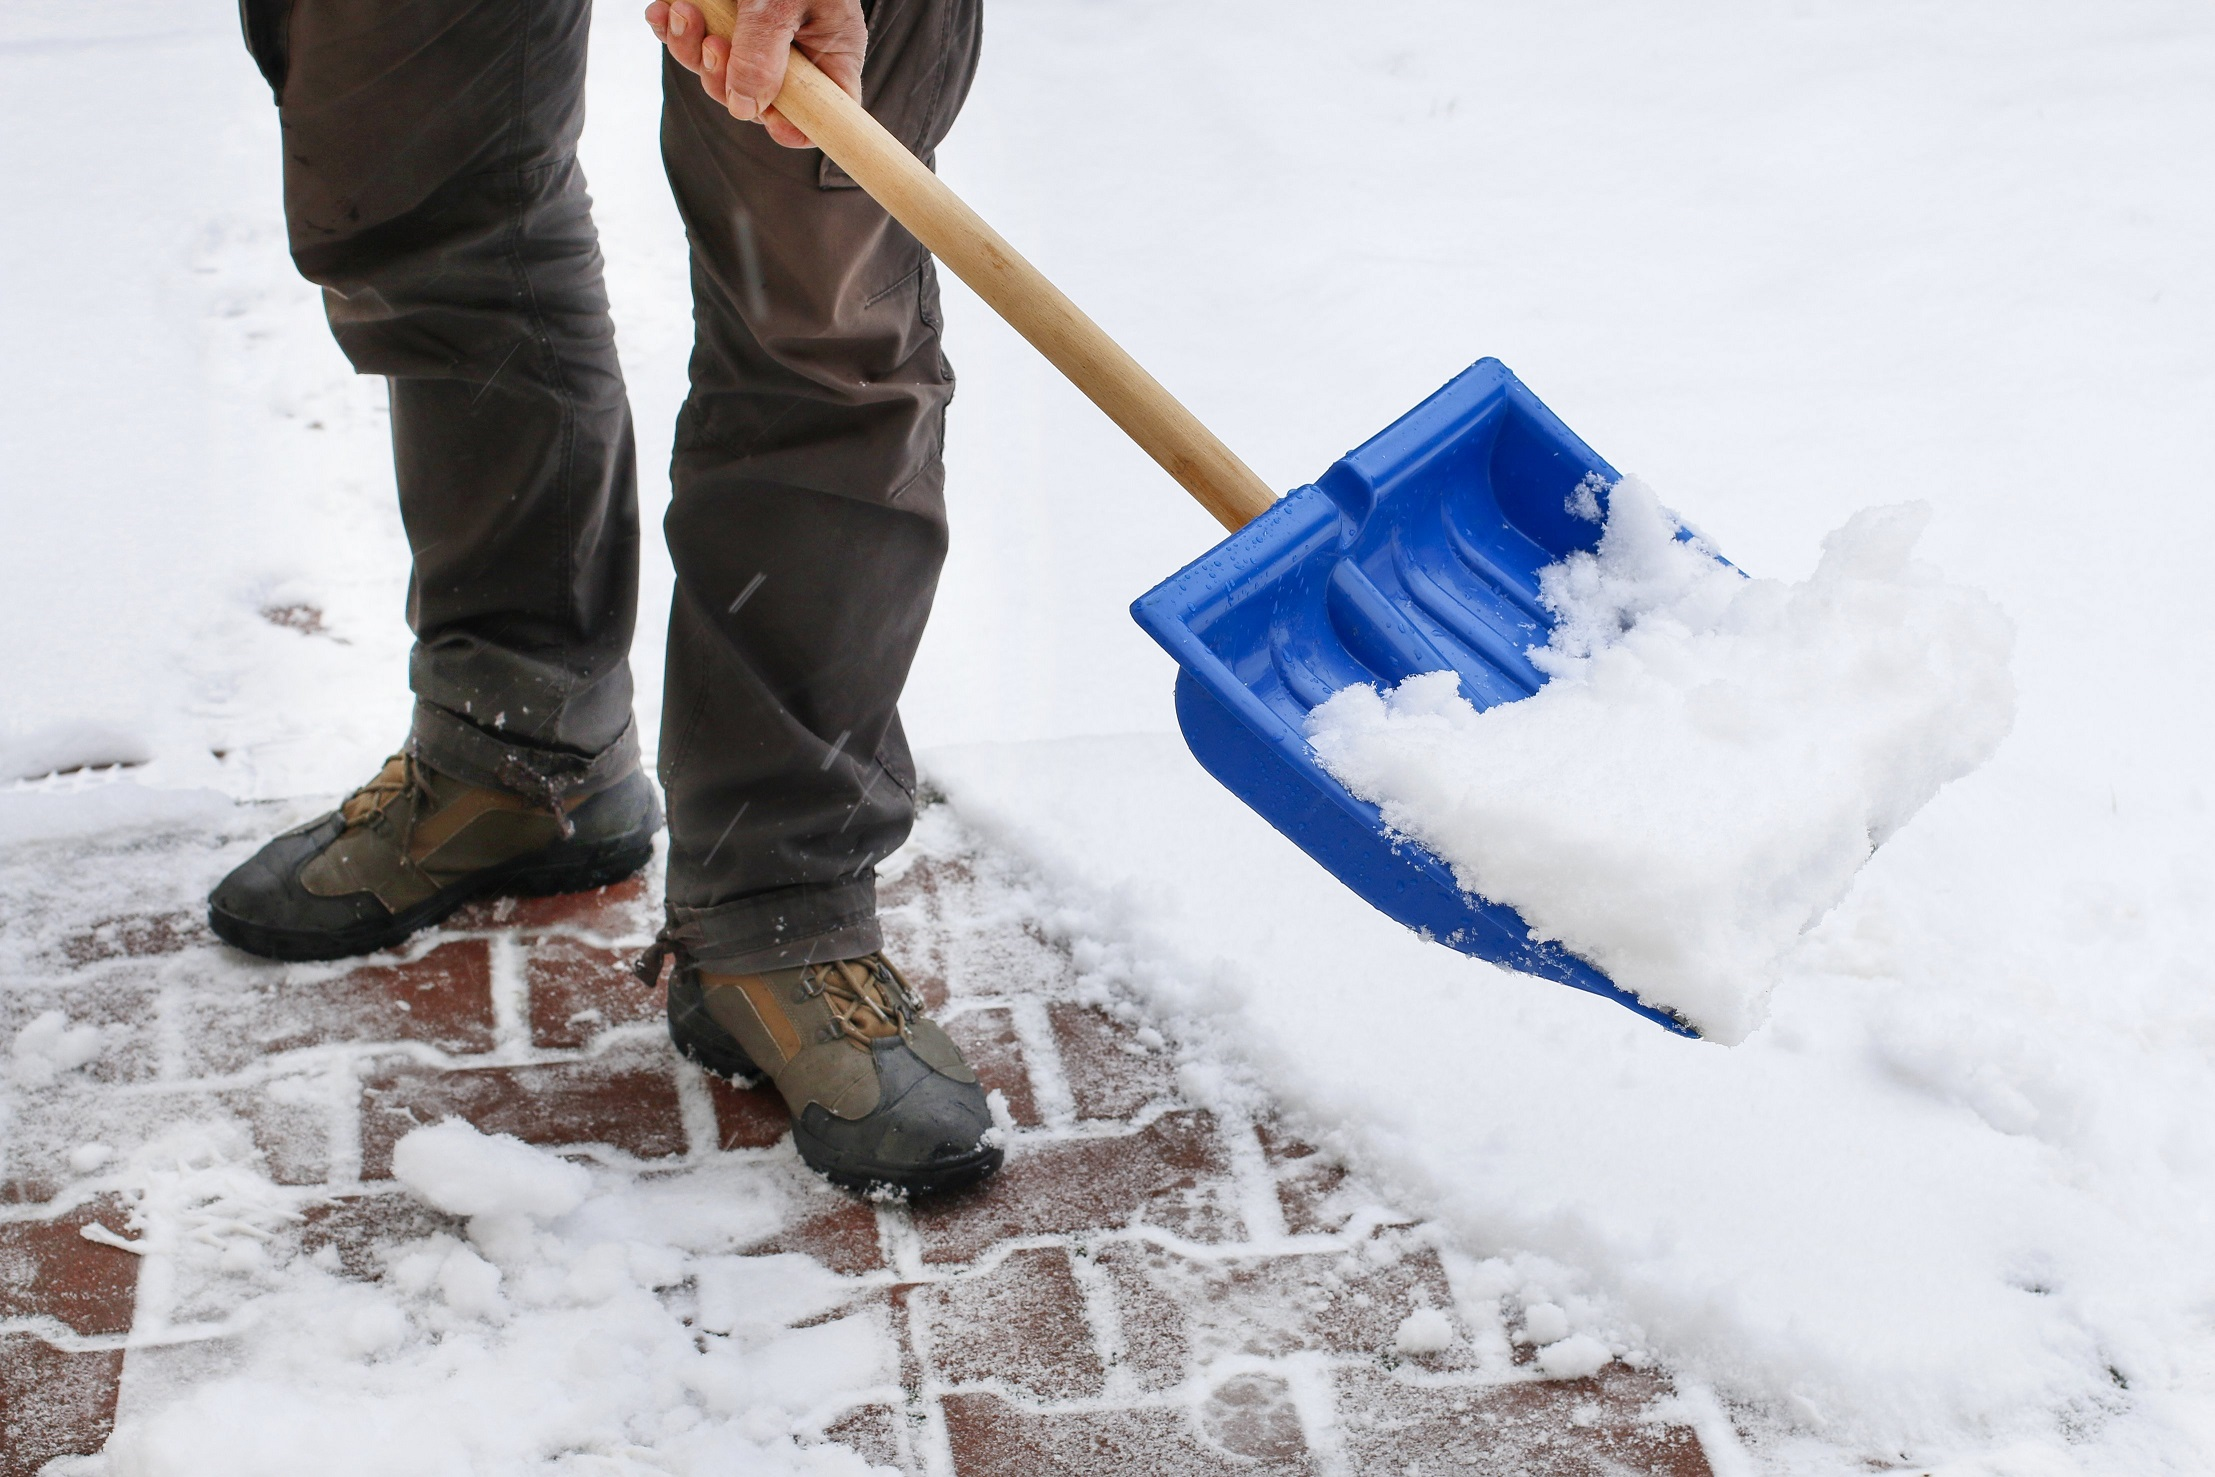 Man shoveling with a blue shovel